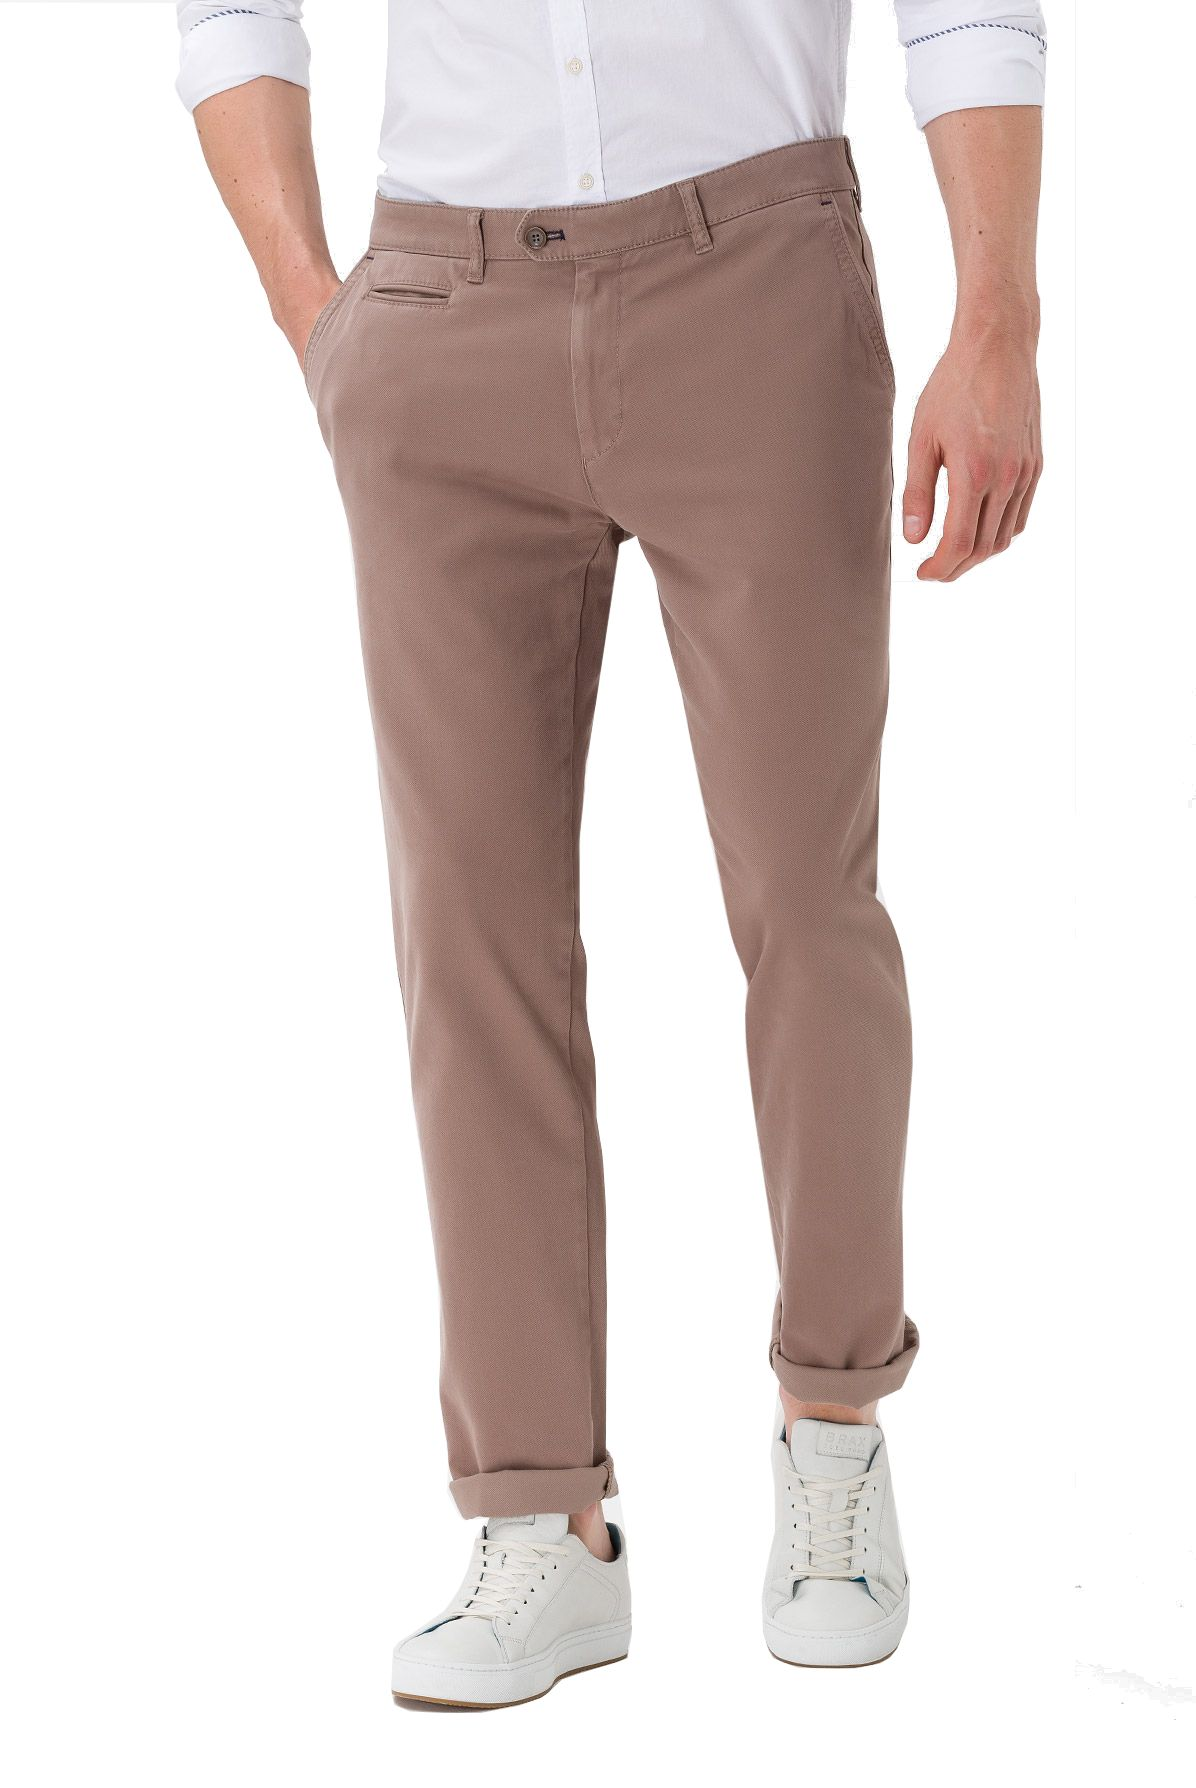 8572f2d96a41 BRAX CHINO FOR MEN - Elegant casual pants for men's wardrobe Picture 5 of 7